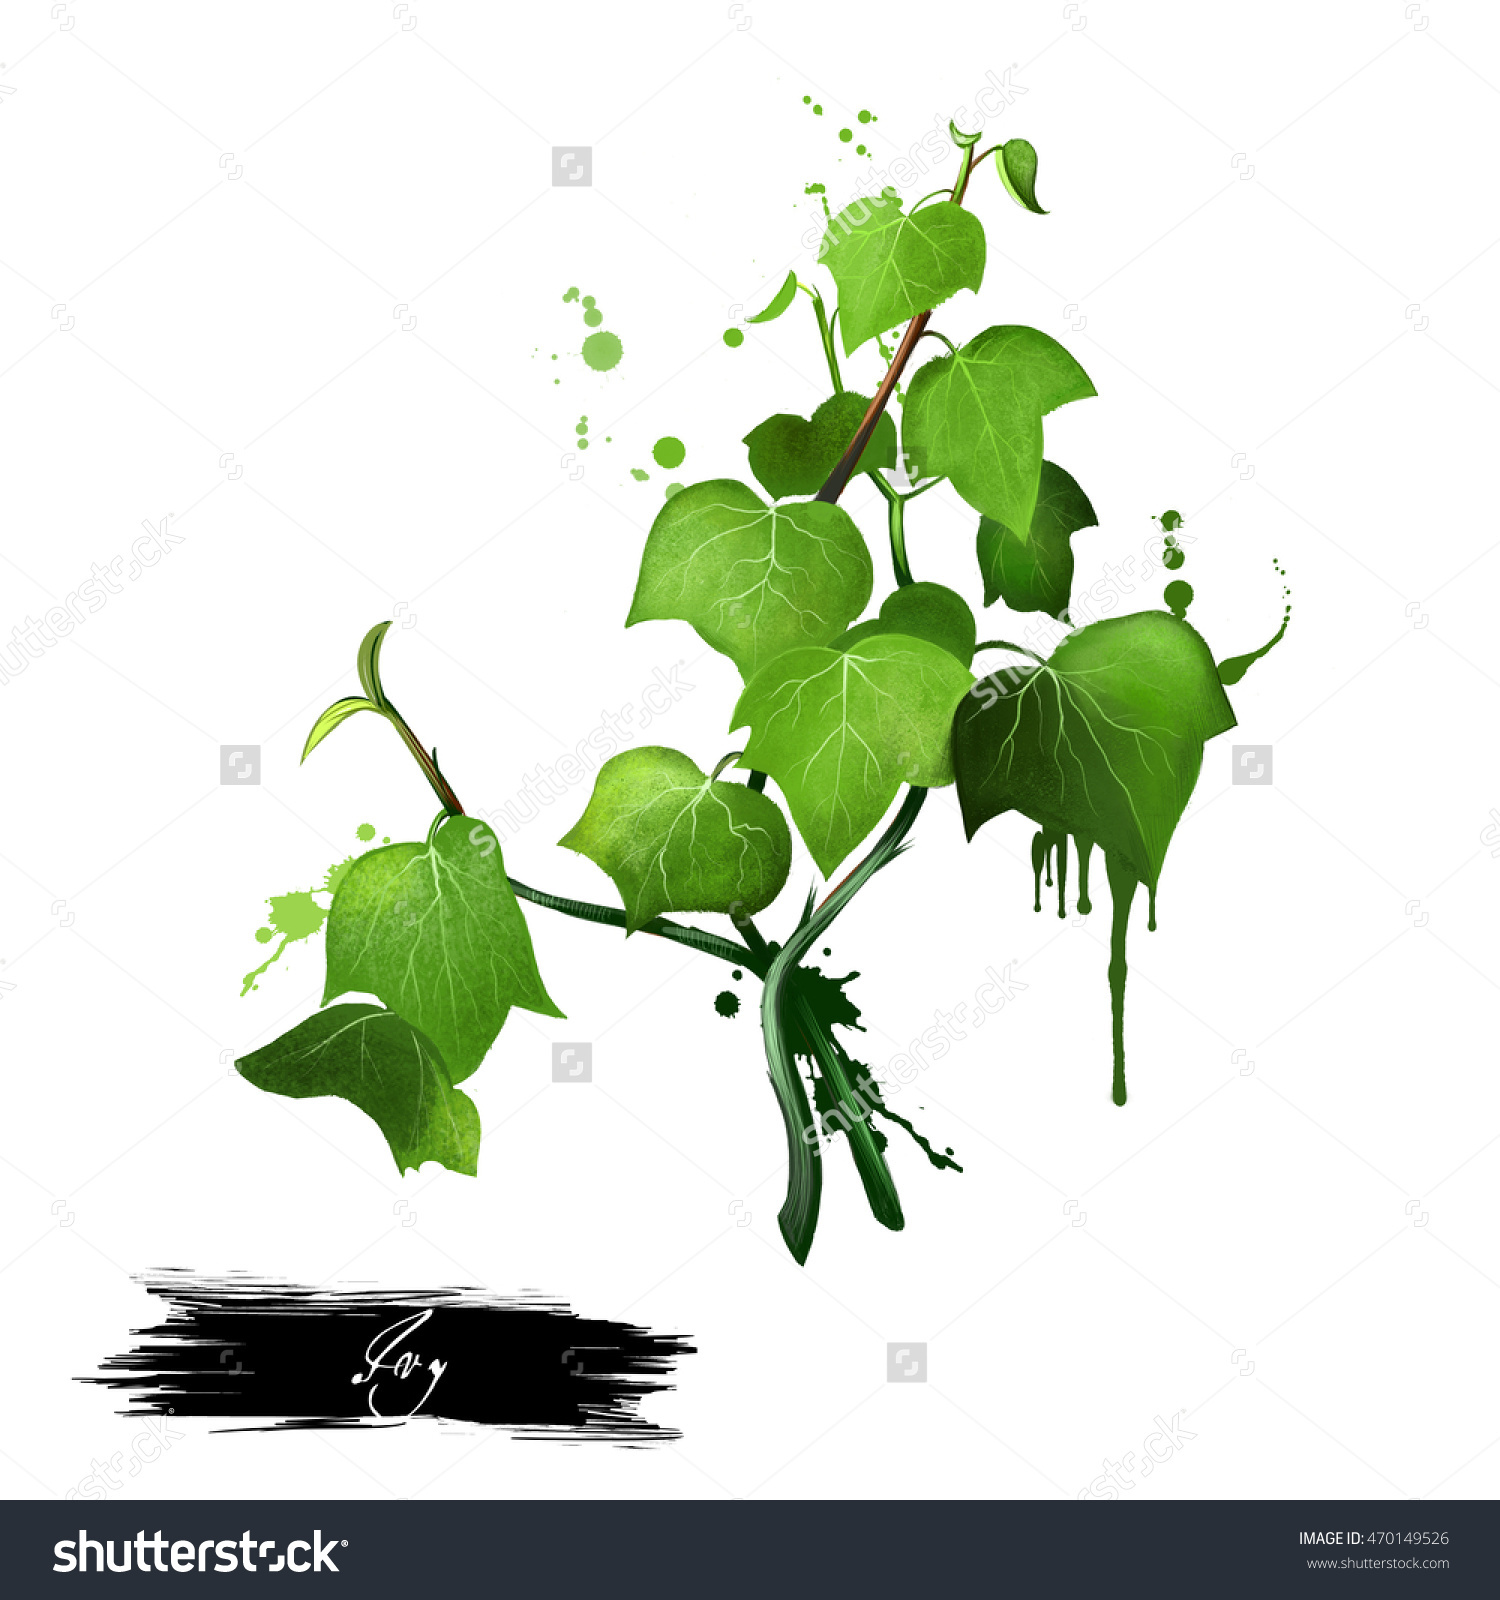 Green Ivy Sprig Isolated On White Background. Hand Drawn.